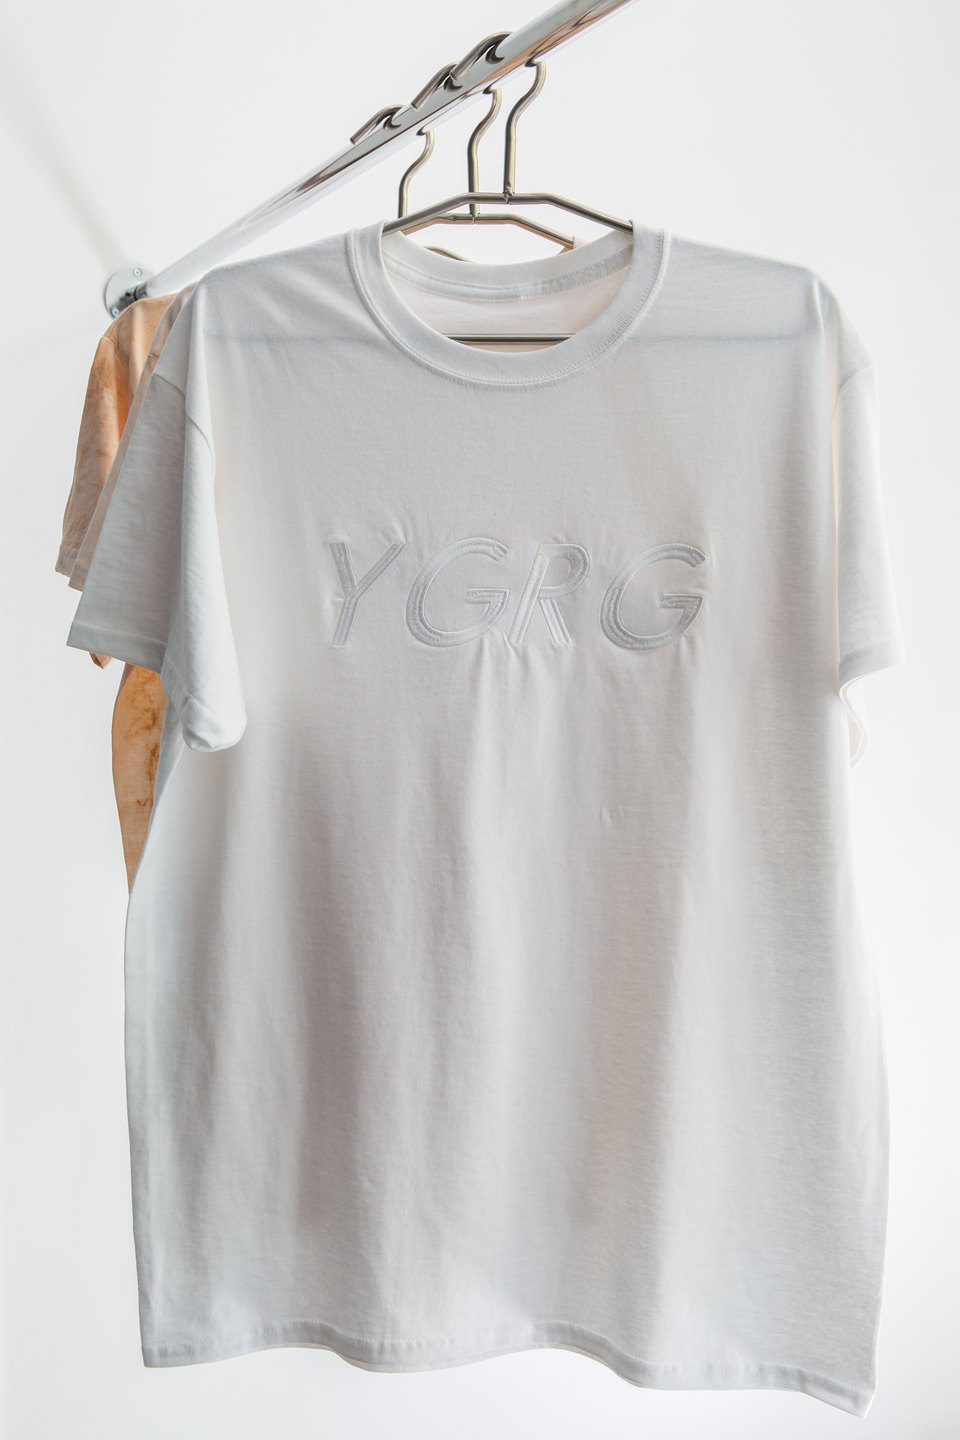 Dorota Gaweda & Egle Kulbokaite, T-shirt, YGRG Outlet, 2018, Cell Project Space